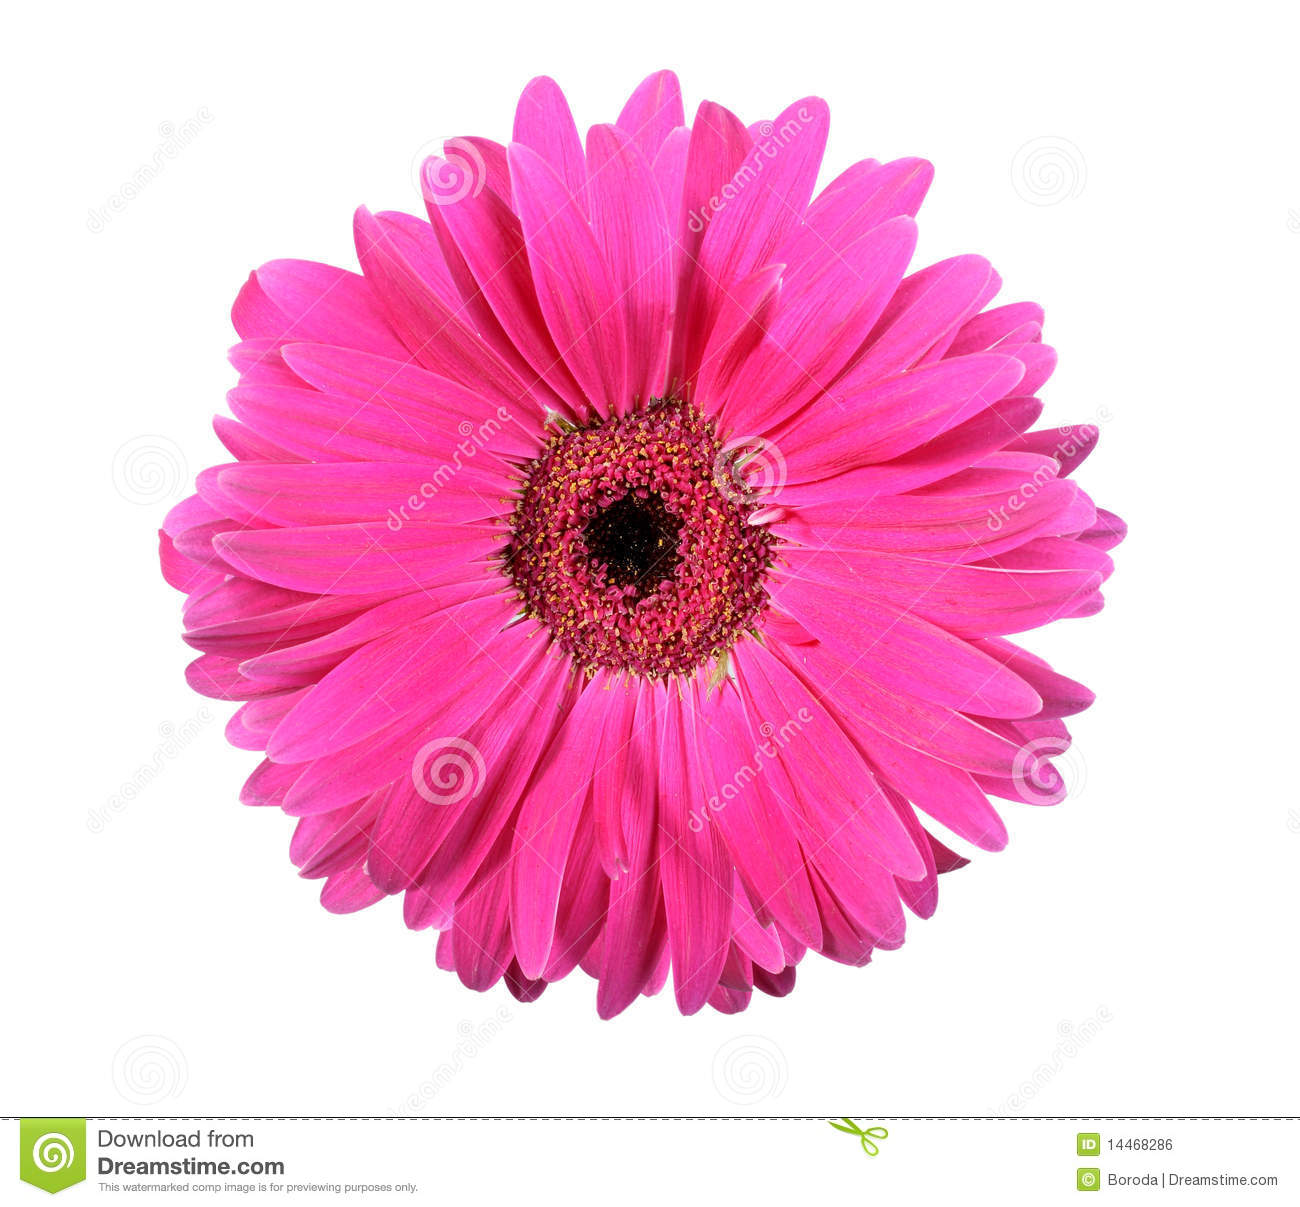 One pink flower isolated on white background stock photo image of download one pink flower isolated on white background stock photo image of gerbera pink mightylinksfo